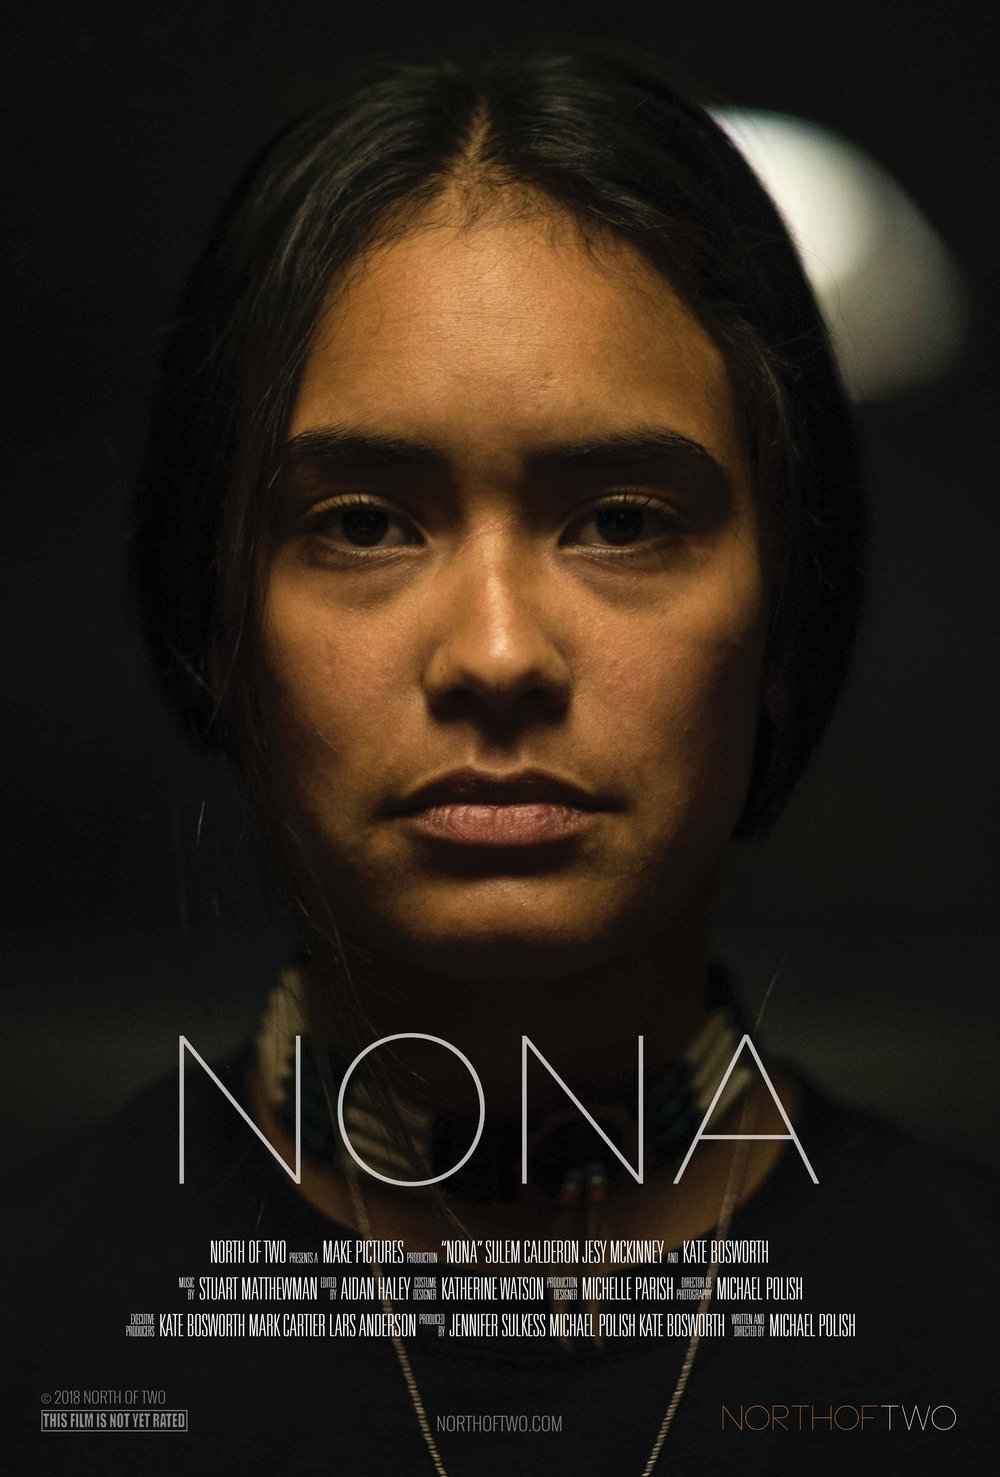 Nona_Poster-27x40-with-25-bleedWEB.jpg